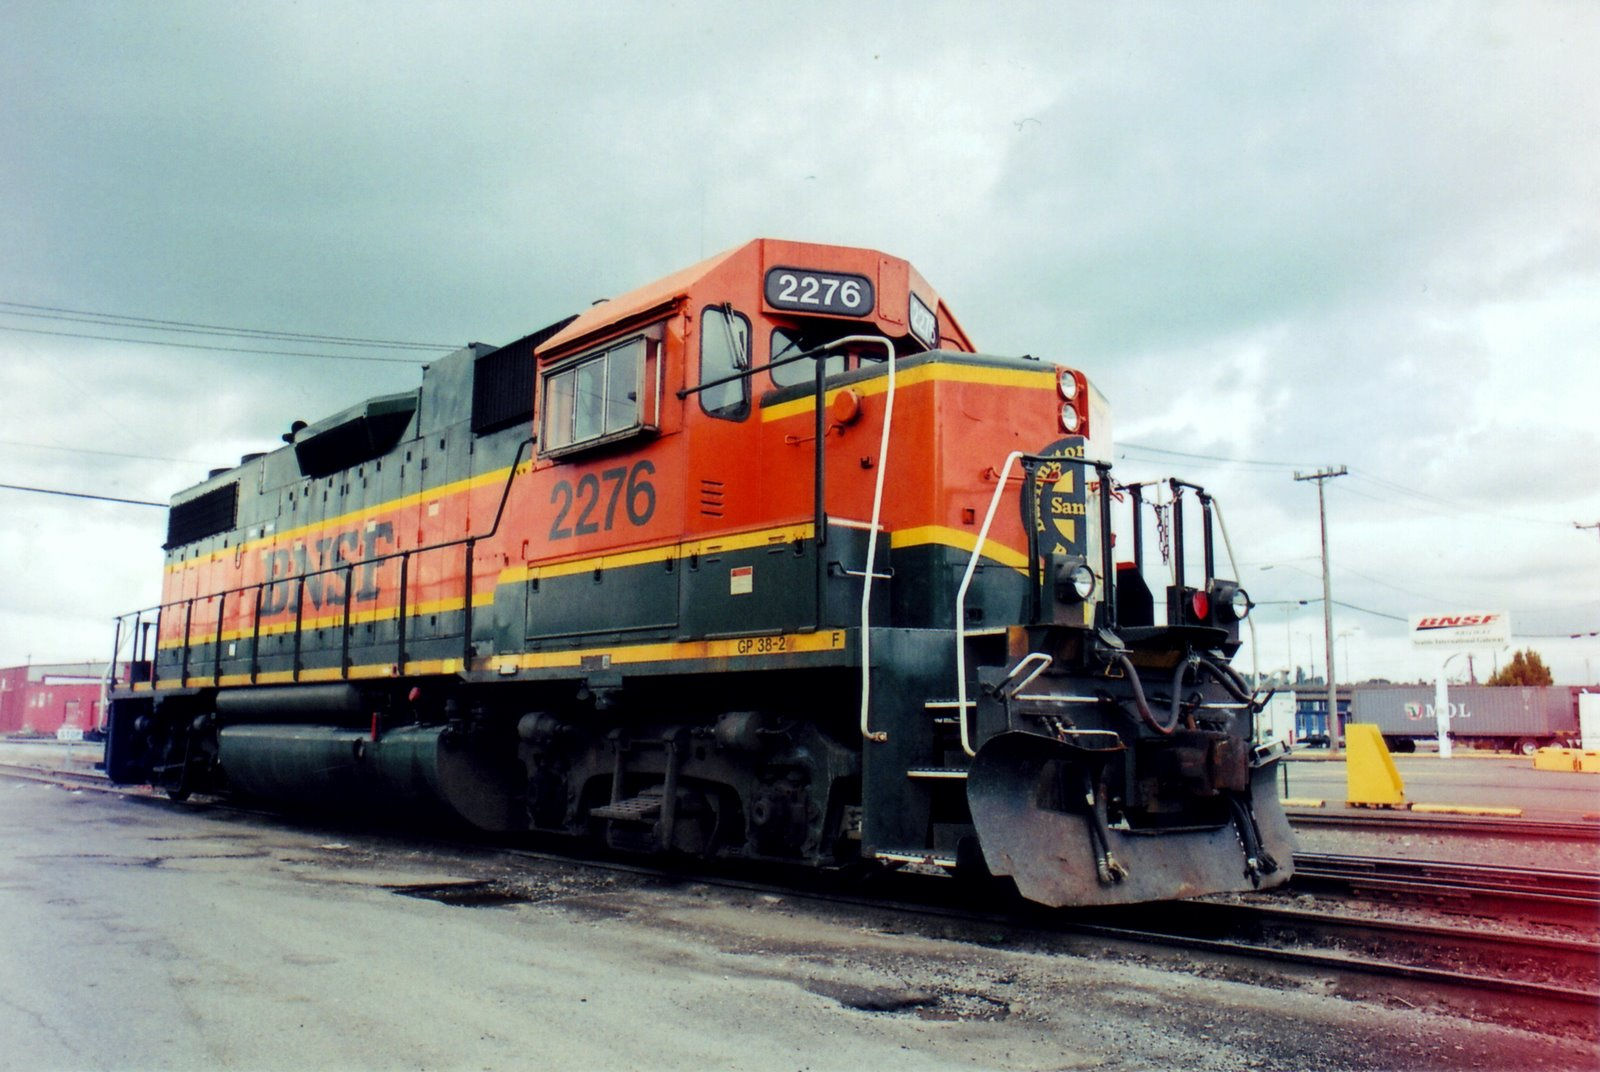 File:BNSF 2276 at Seattle SODO (Public Domain).jpg